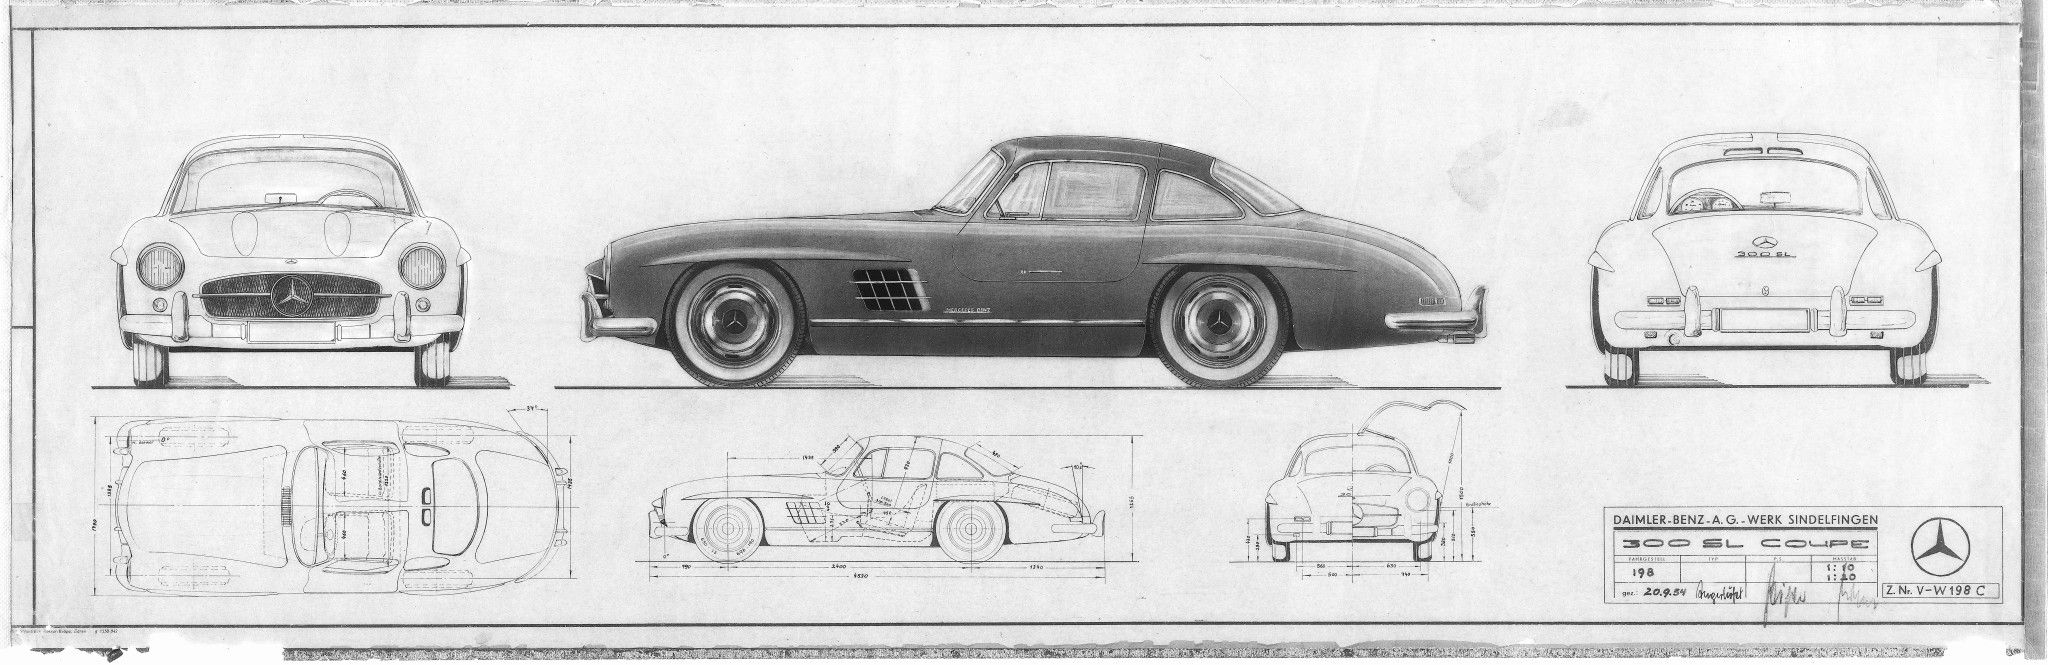 Mercedes-Benz-300SL-Blueprints-and-Design-Sketches | Voitures ...